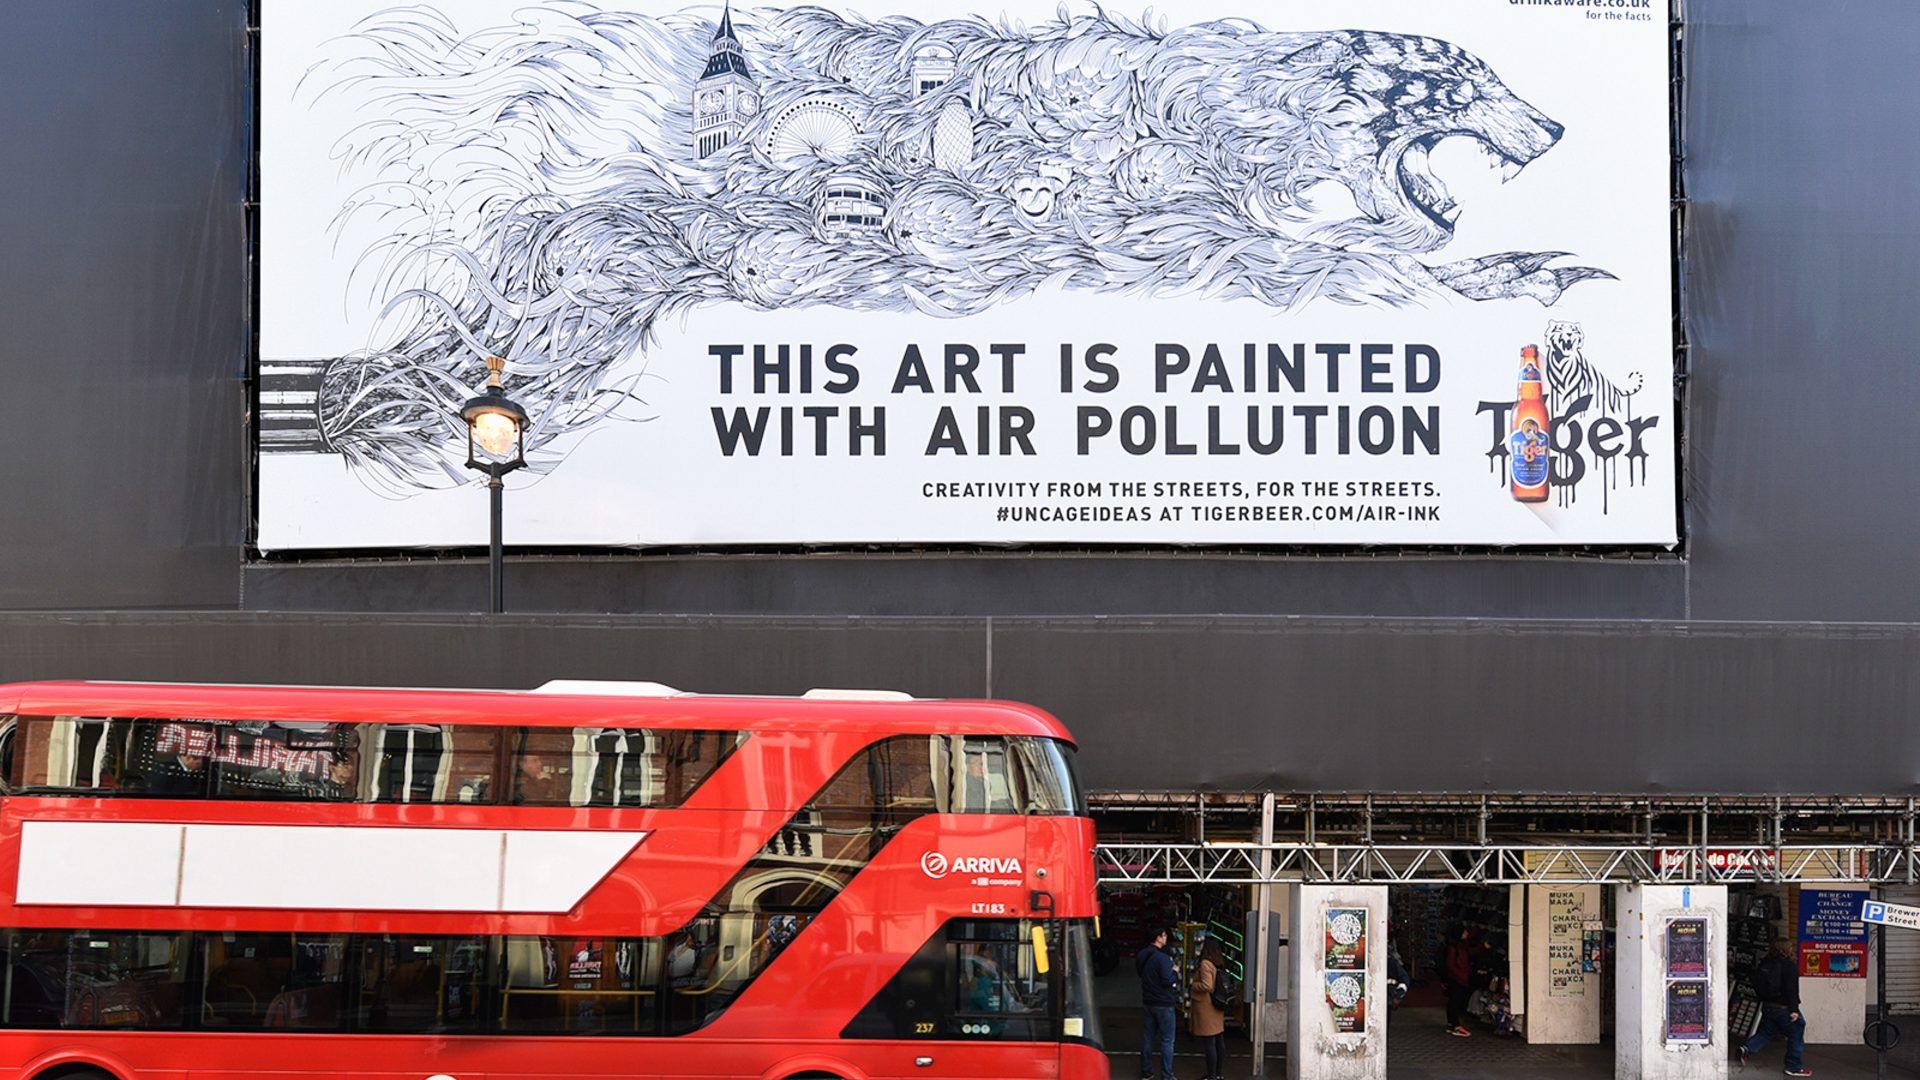 An art work painted using air pollution in London